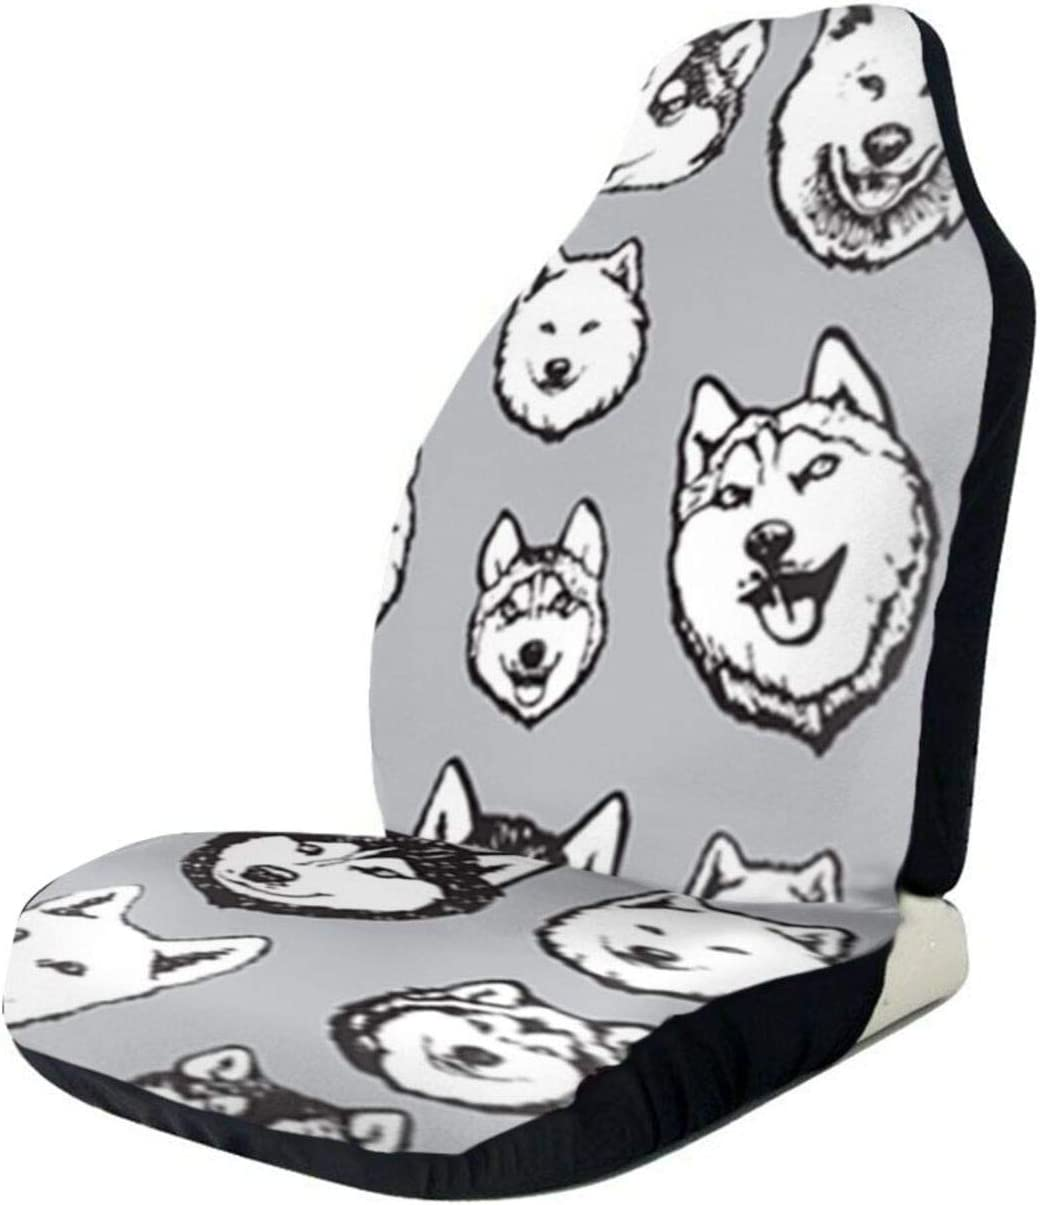 RUTO Husky Car Seat Covers Set Off-Road Max 41% OFF Suvs Cars Most Ranking TOP2 Vehicle